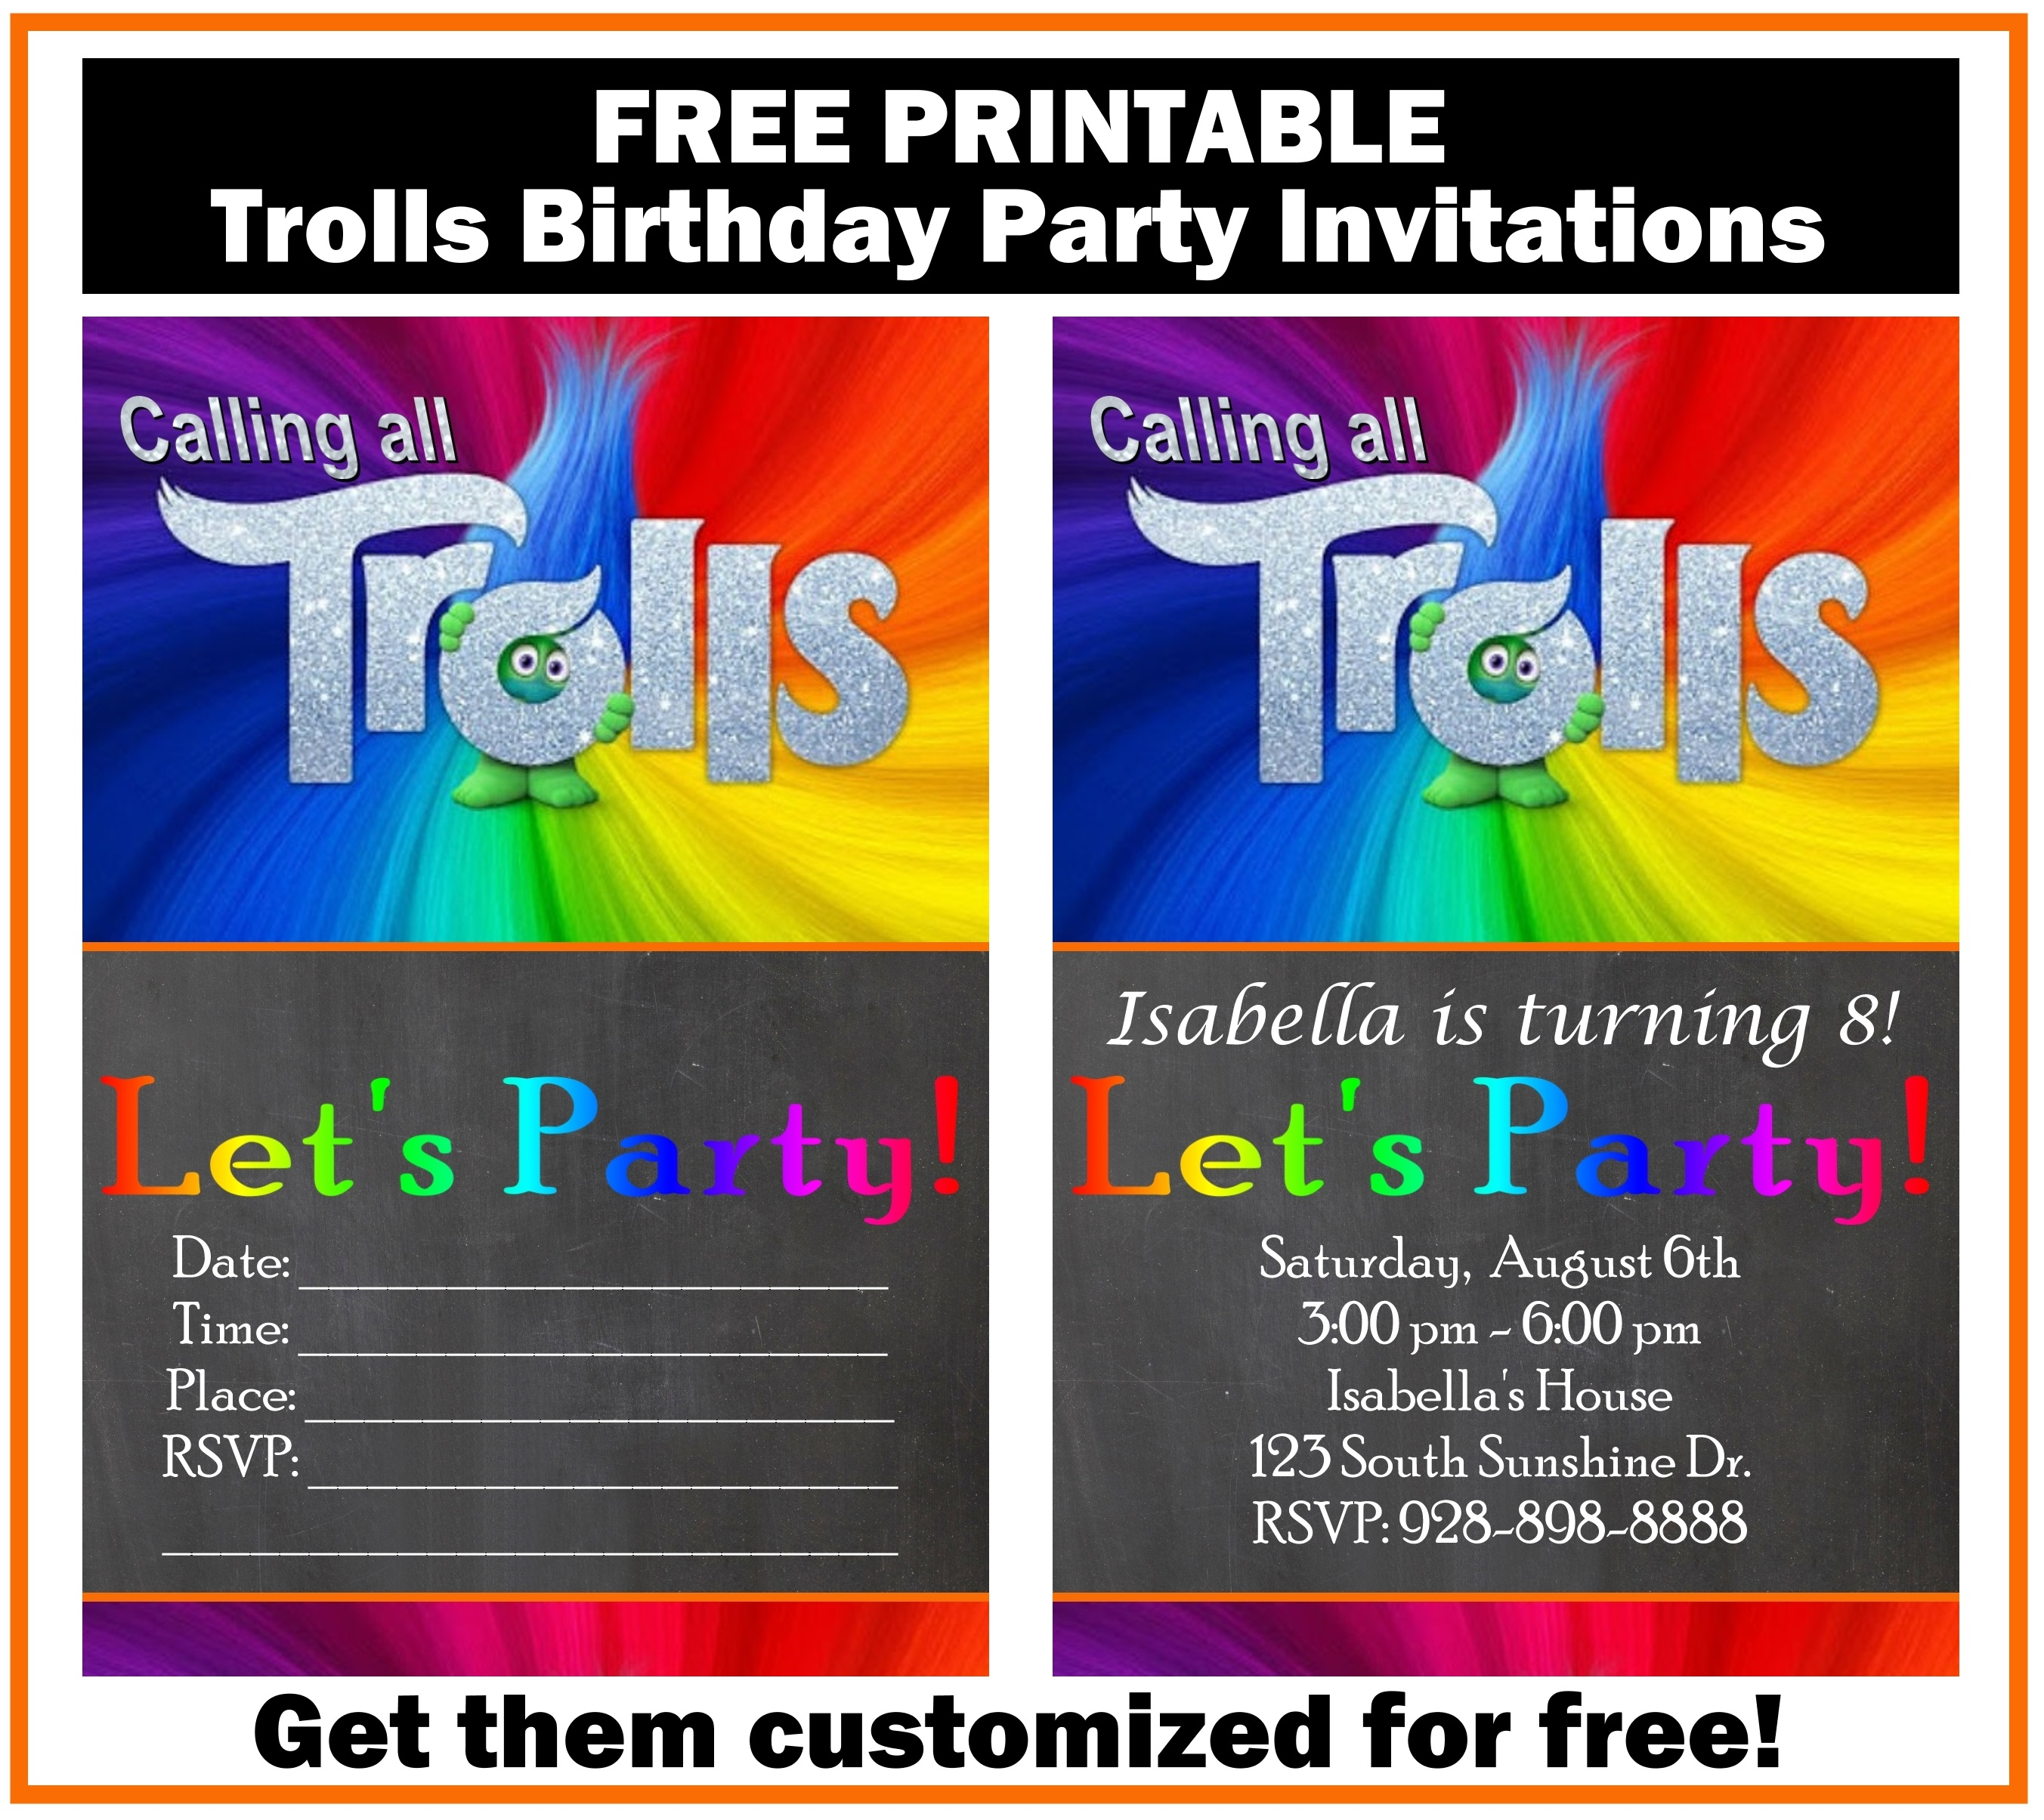 Free Trolls Birthday Party Invitation Printables